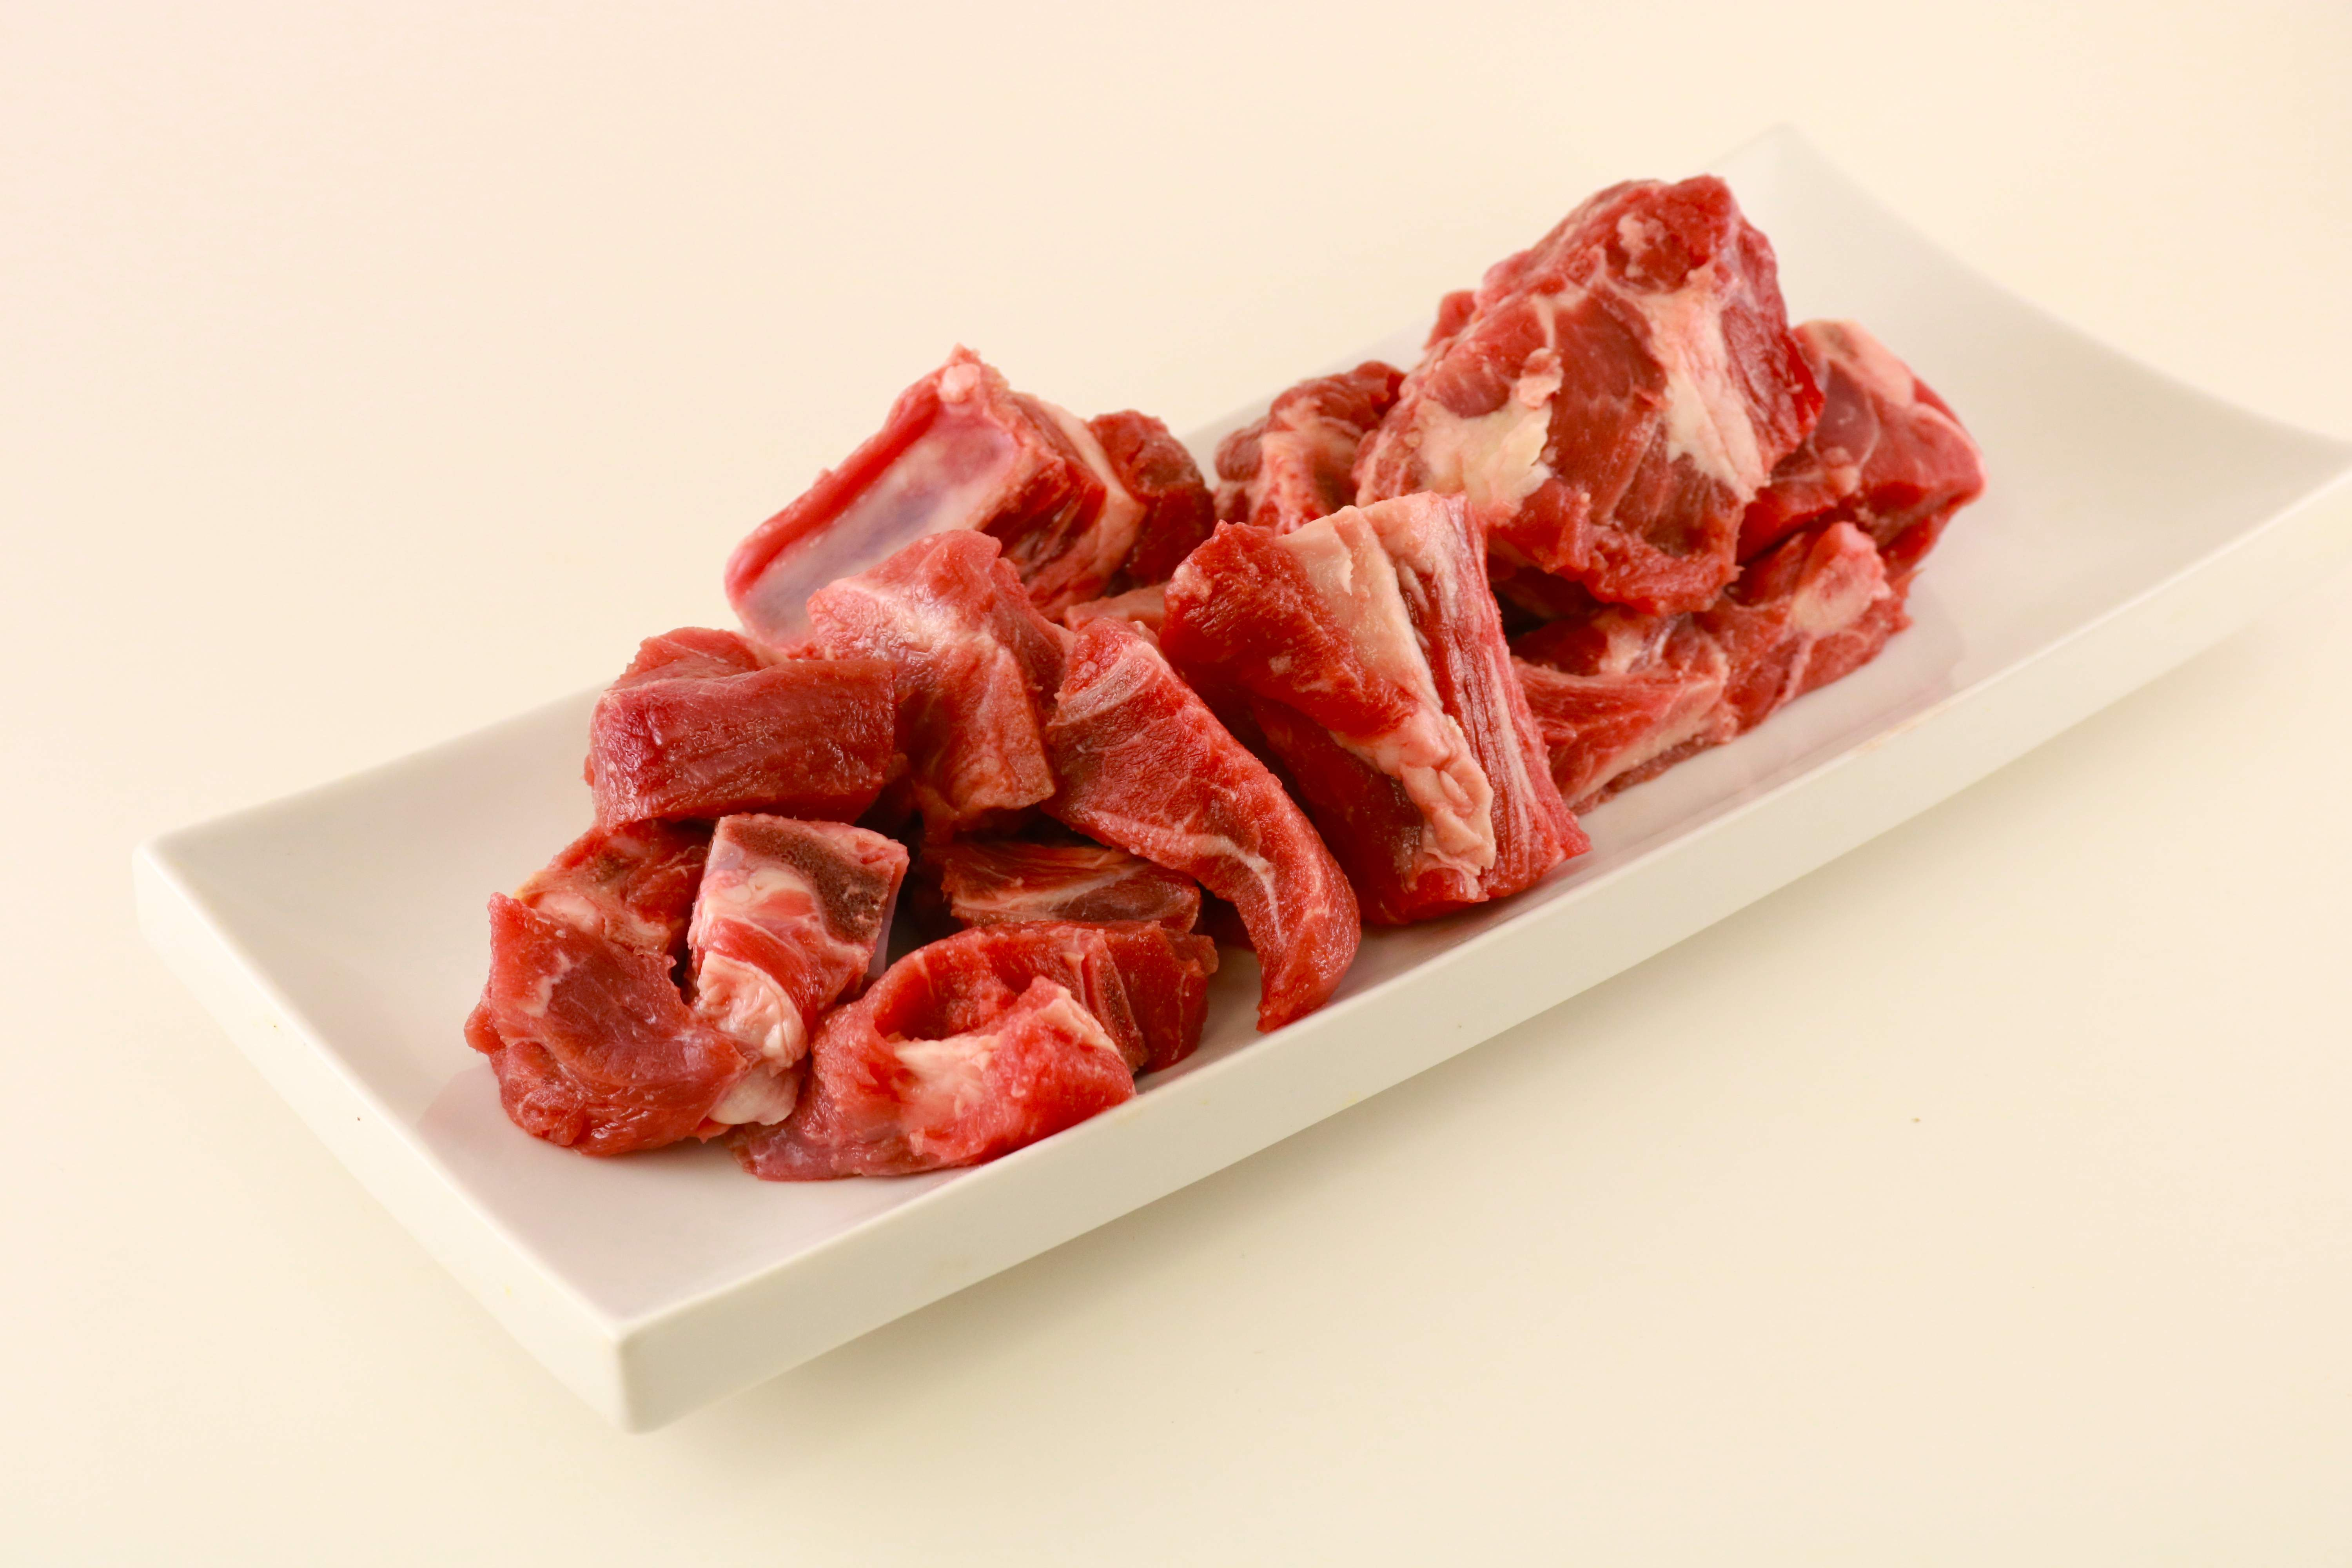 Raw Plain Lamb Mix Image